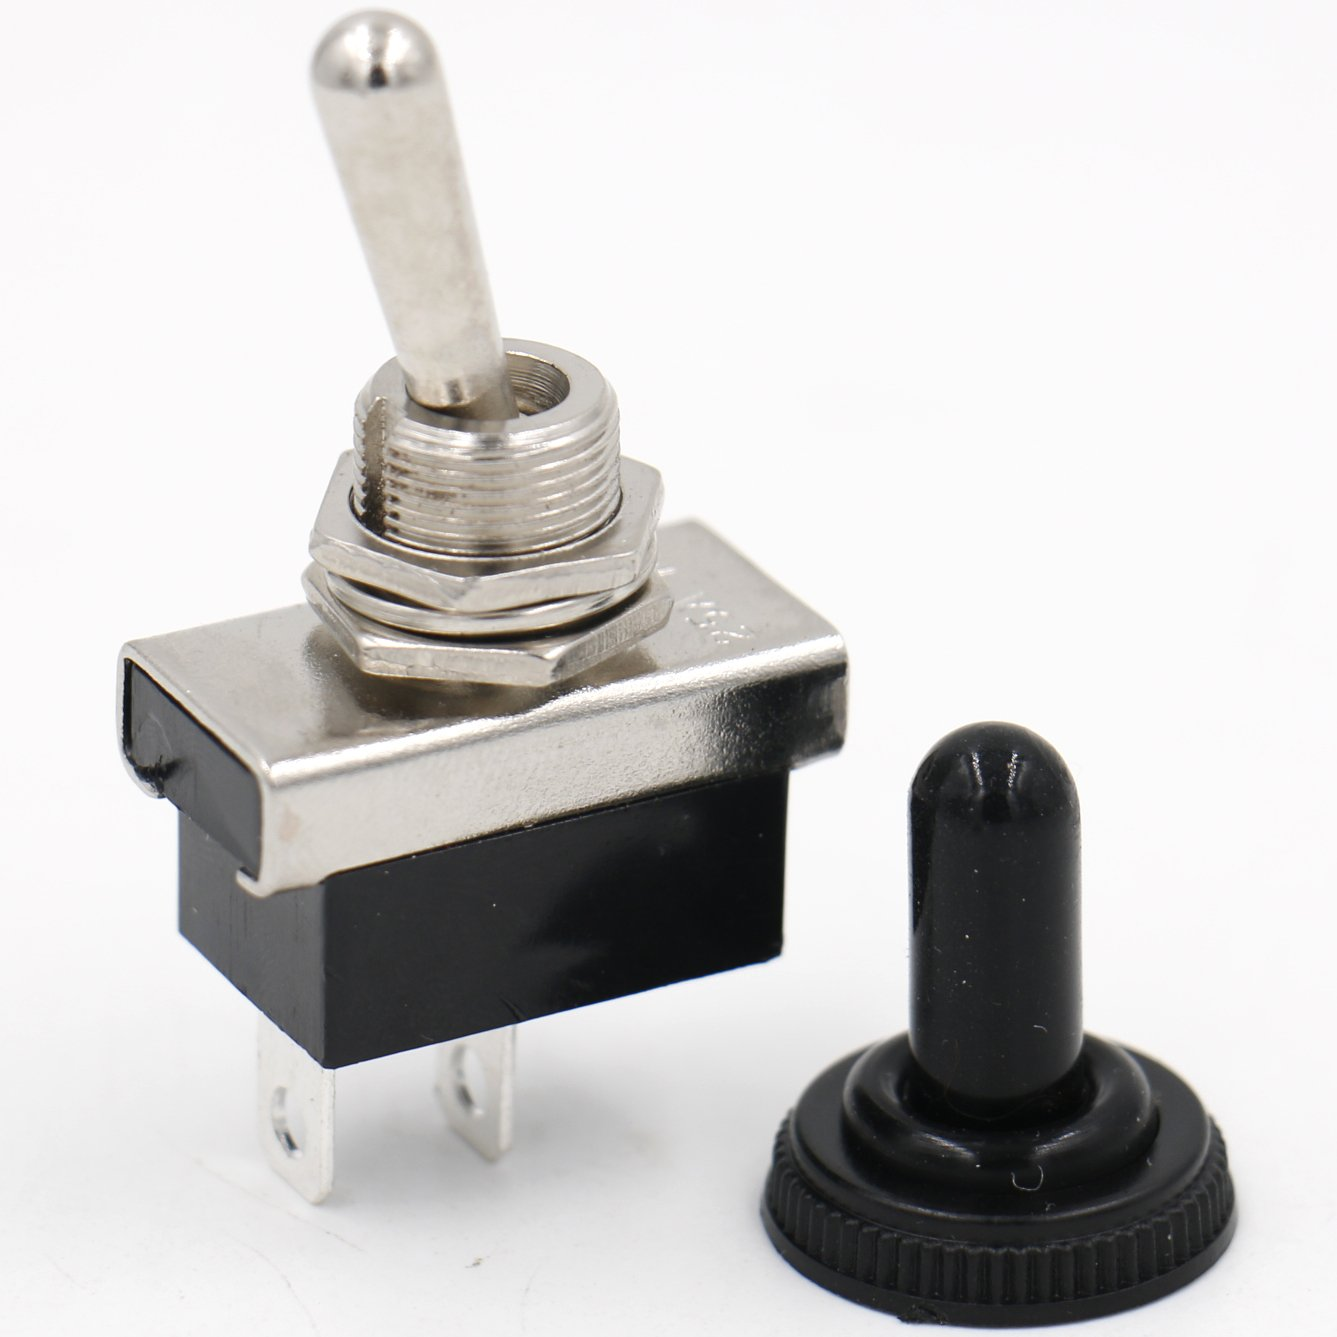 Heschen Metal Toggle switch Flick Flip 12V 25A SPST On//Off 2 positon 2 pin for Car Dash Light with waterproof cap